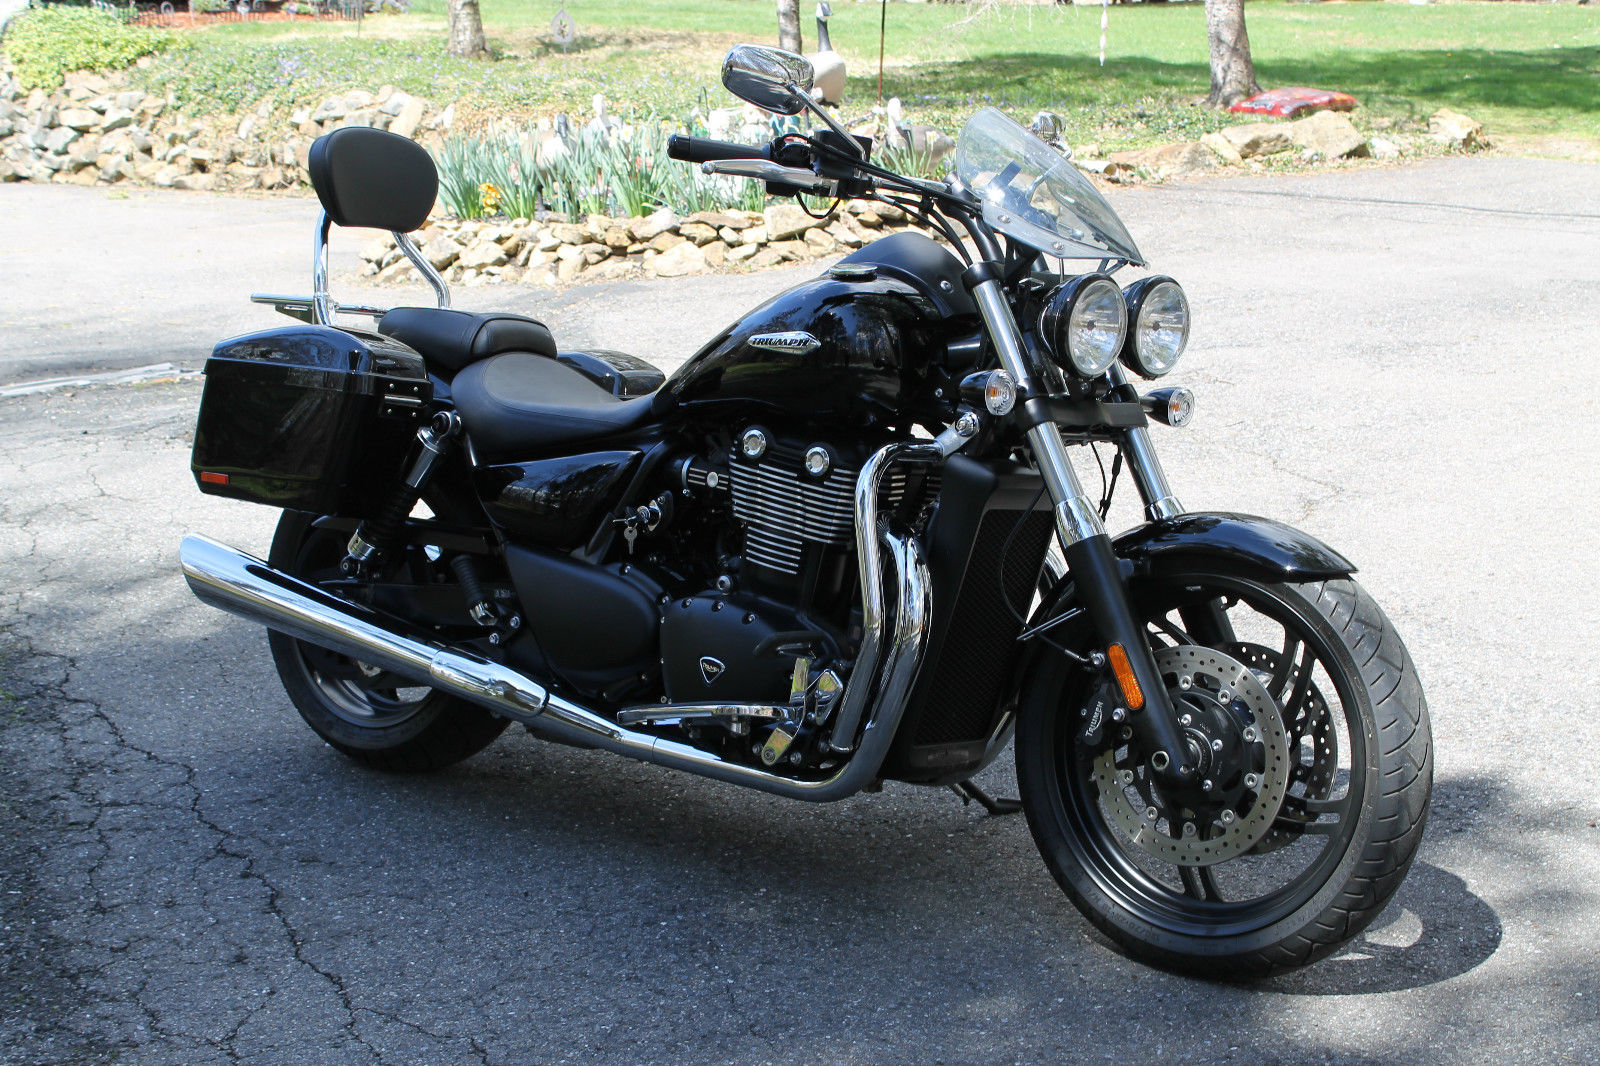 BMW Used For Sale >> 2013 TRIUMPH THUNDERBIRD STORM ABS